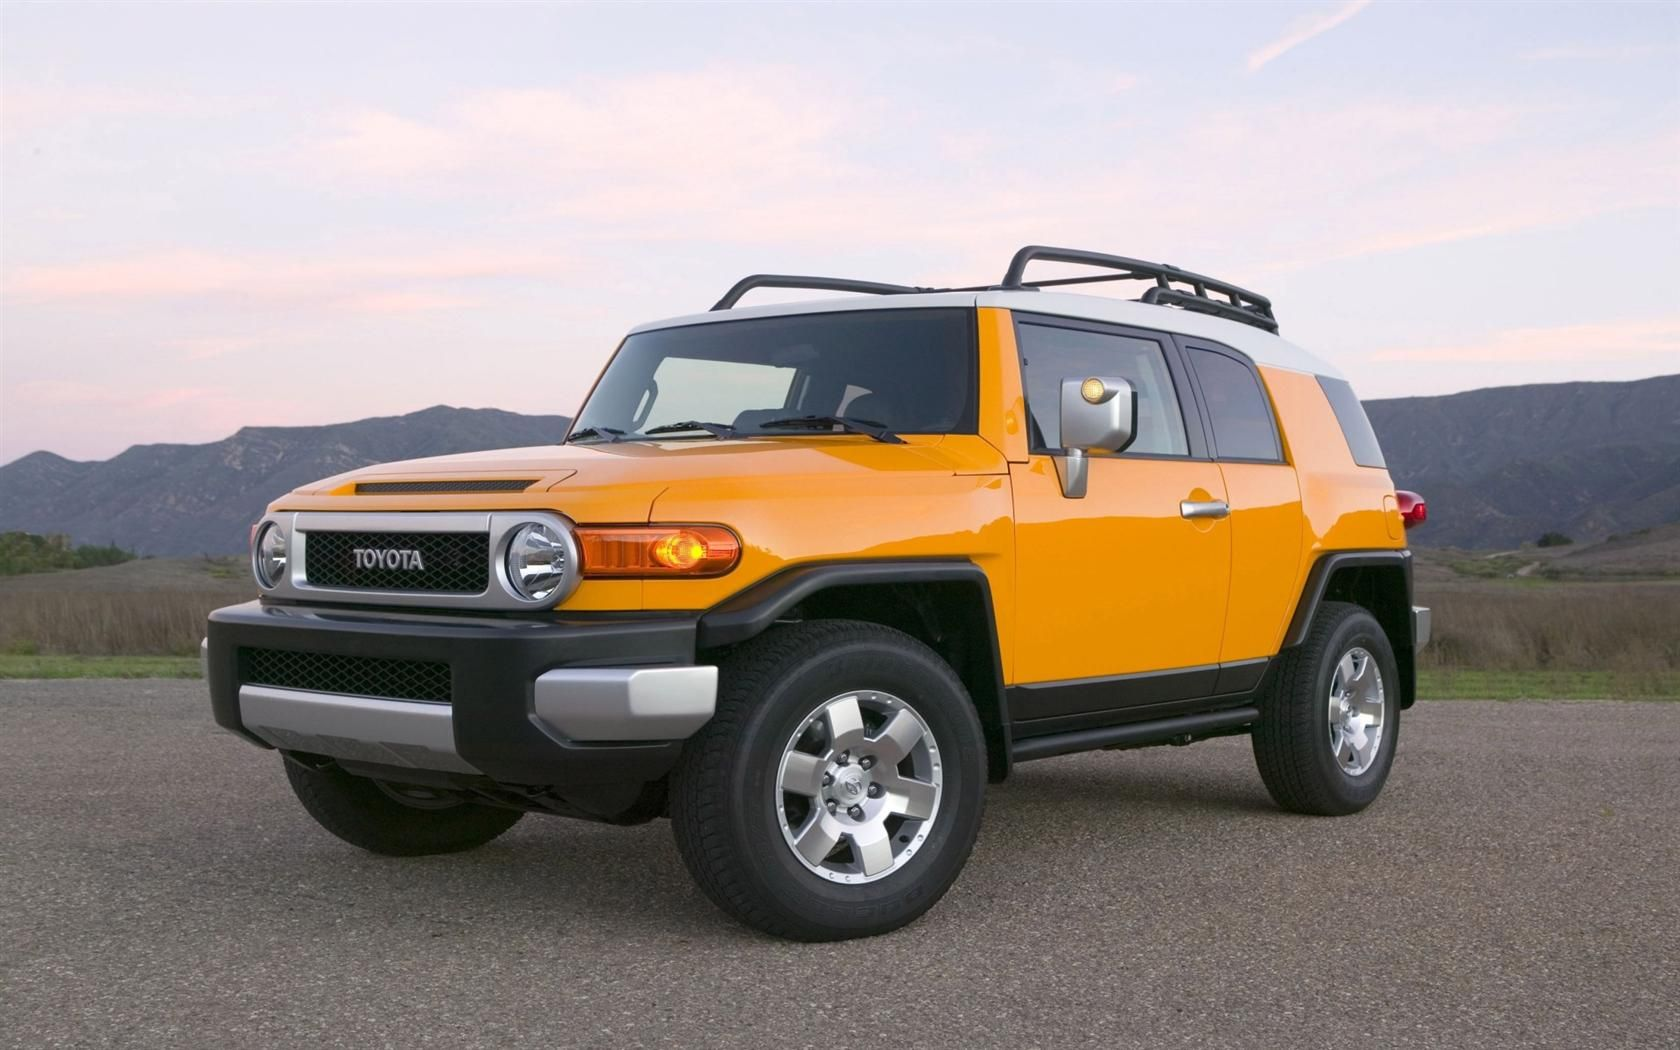 2010 Toyota Fj Cruiser Review And Price In 2020 Toyota Fj Cruiser Fj Cruiser Toyota Cruiser